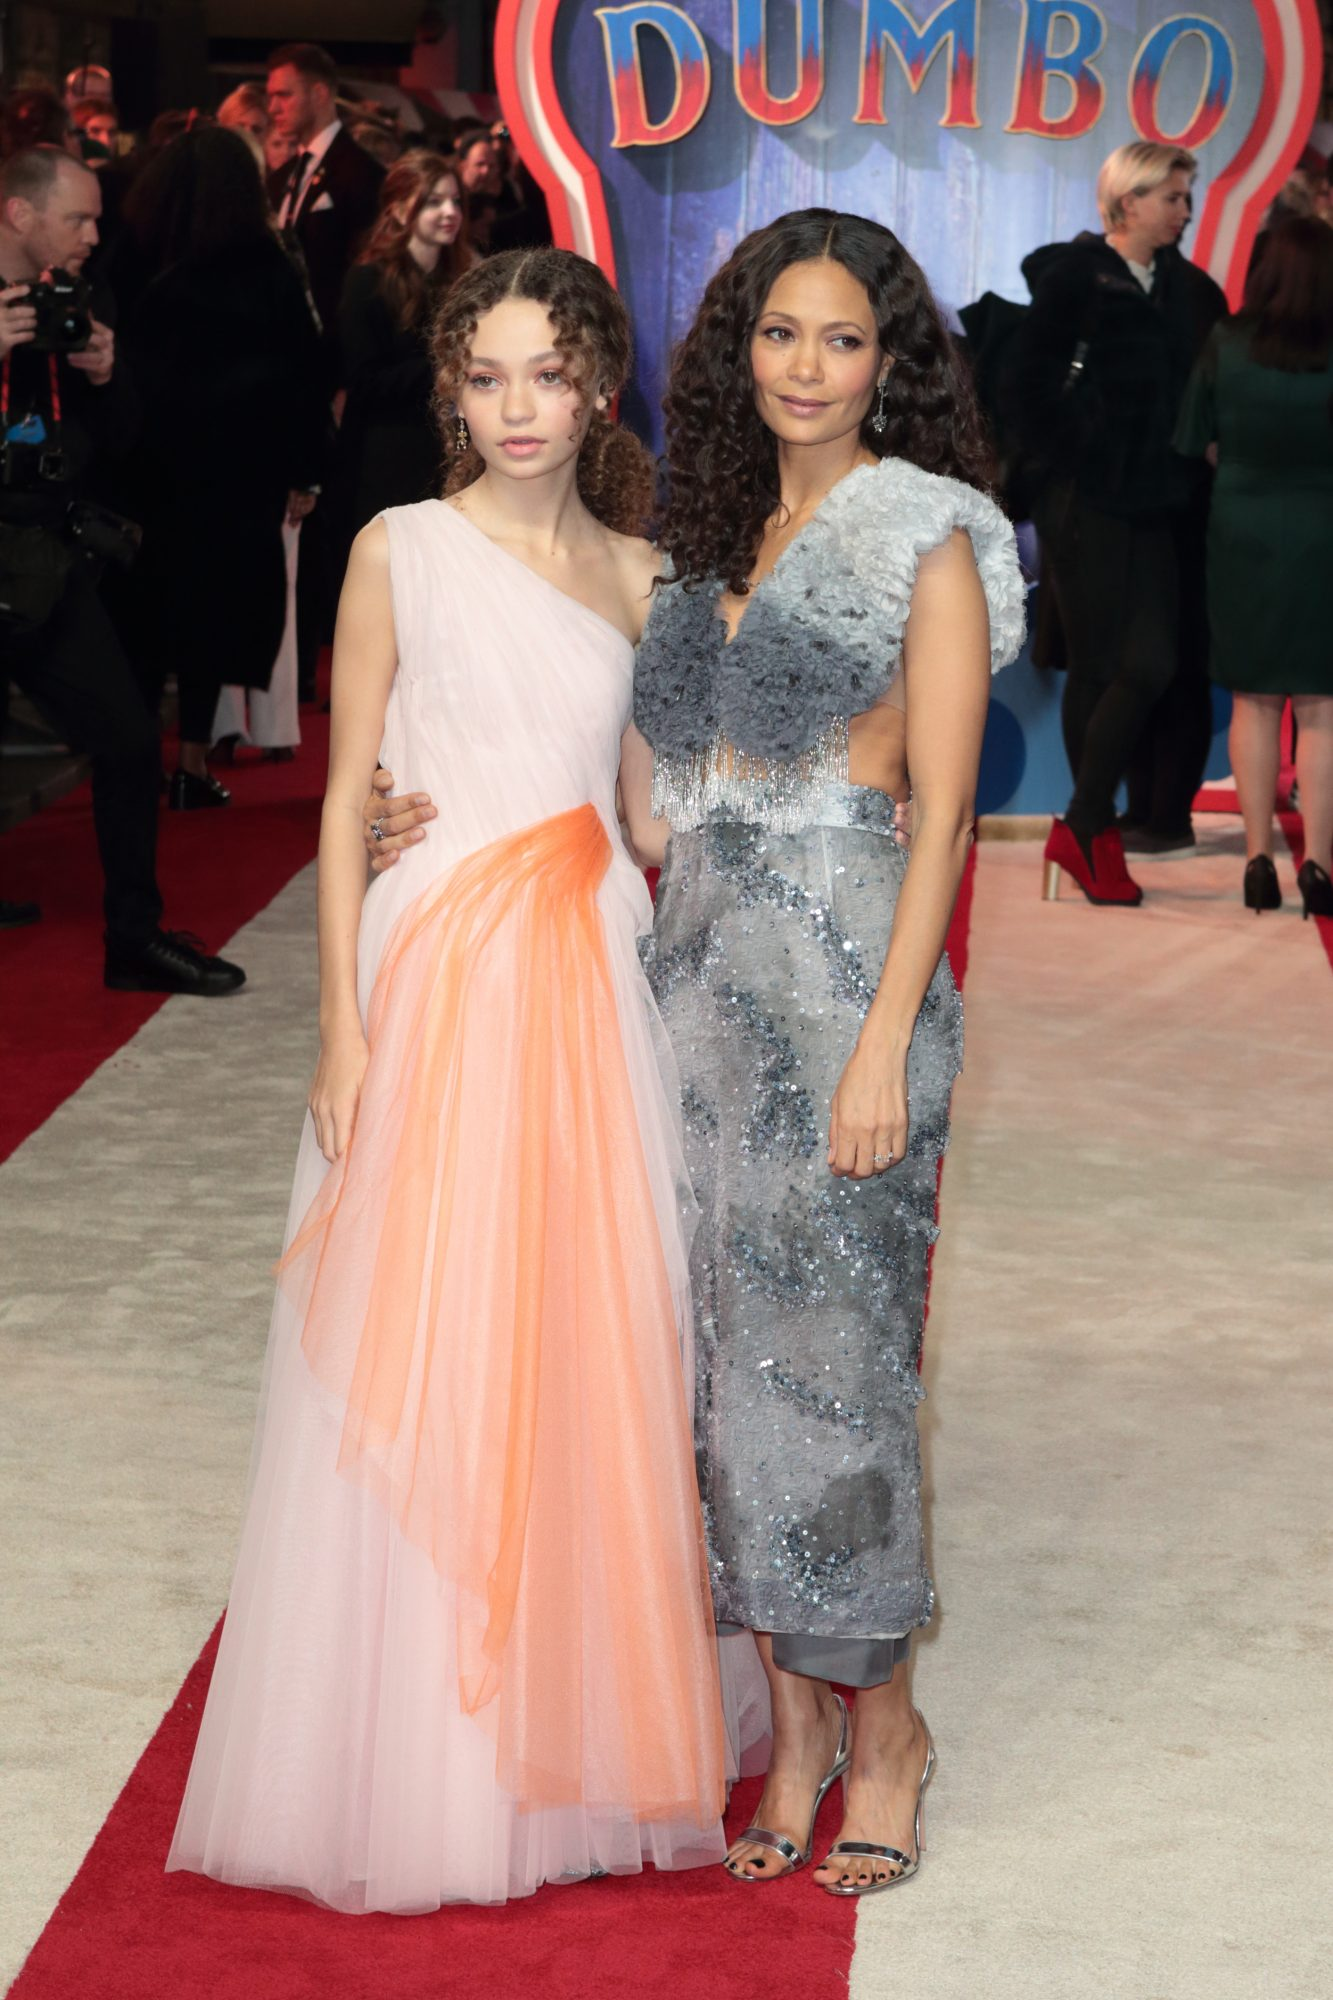 Thandie Newton Brought Her Look-Alike Daughter to the Dumbo Premiere